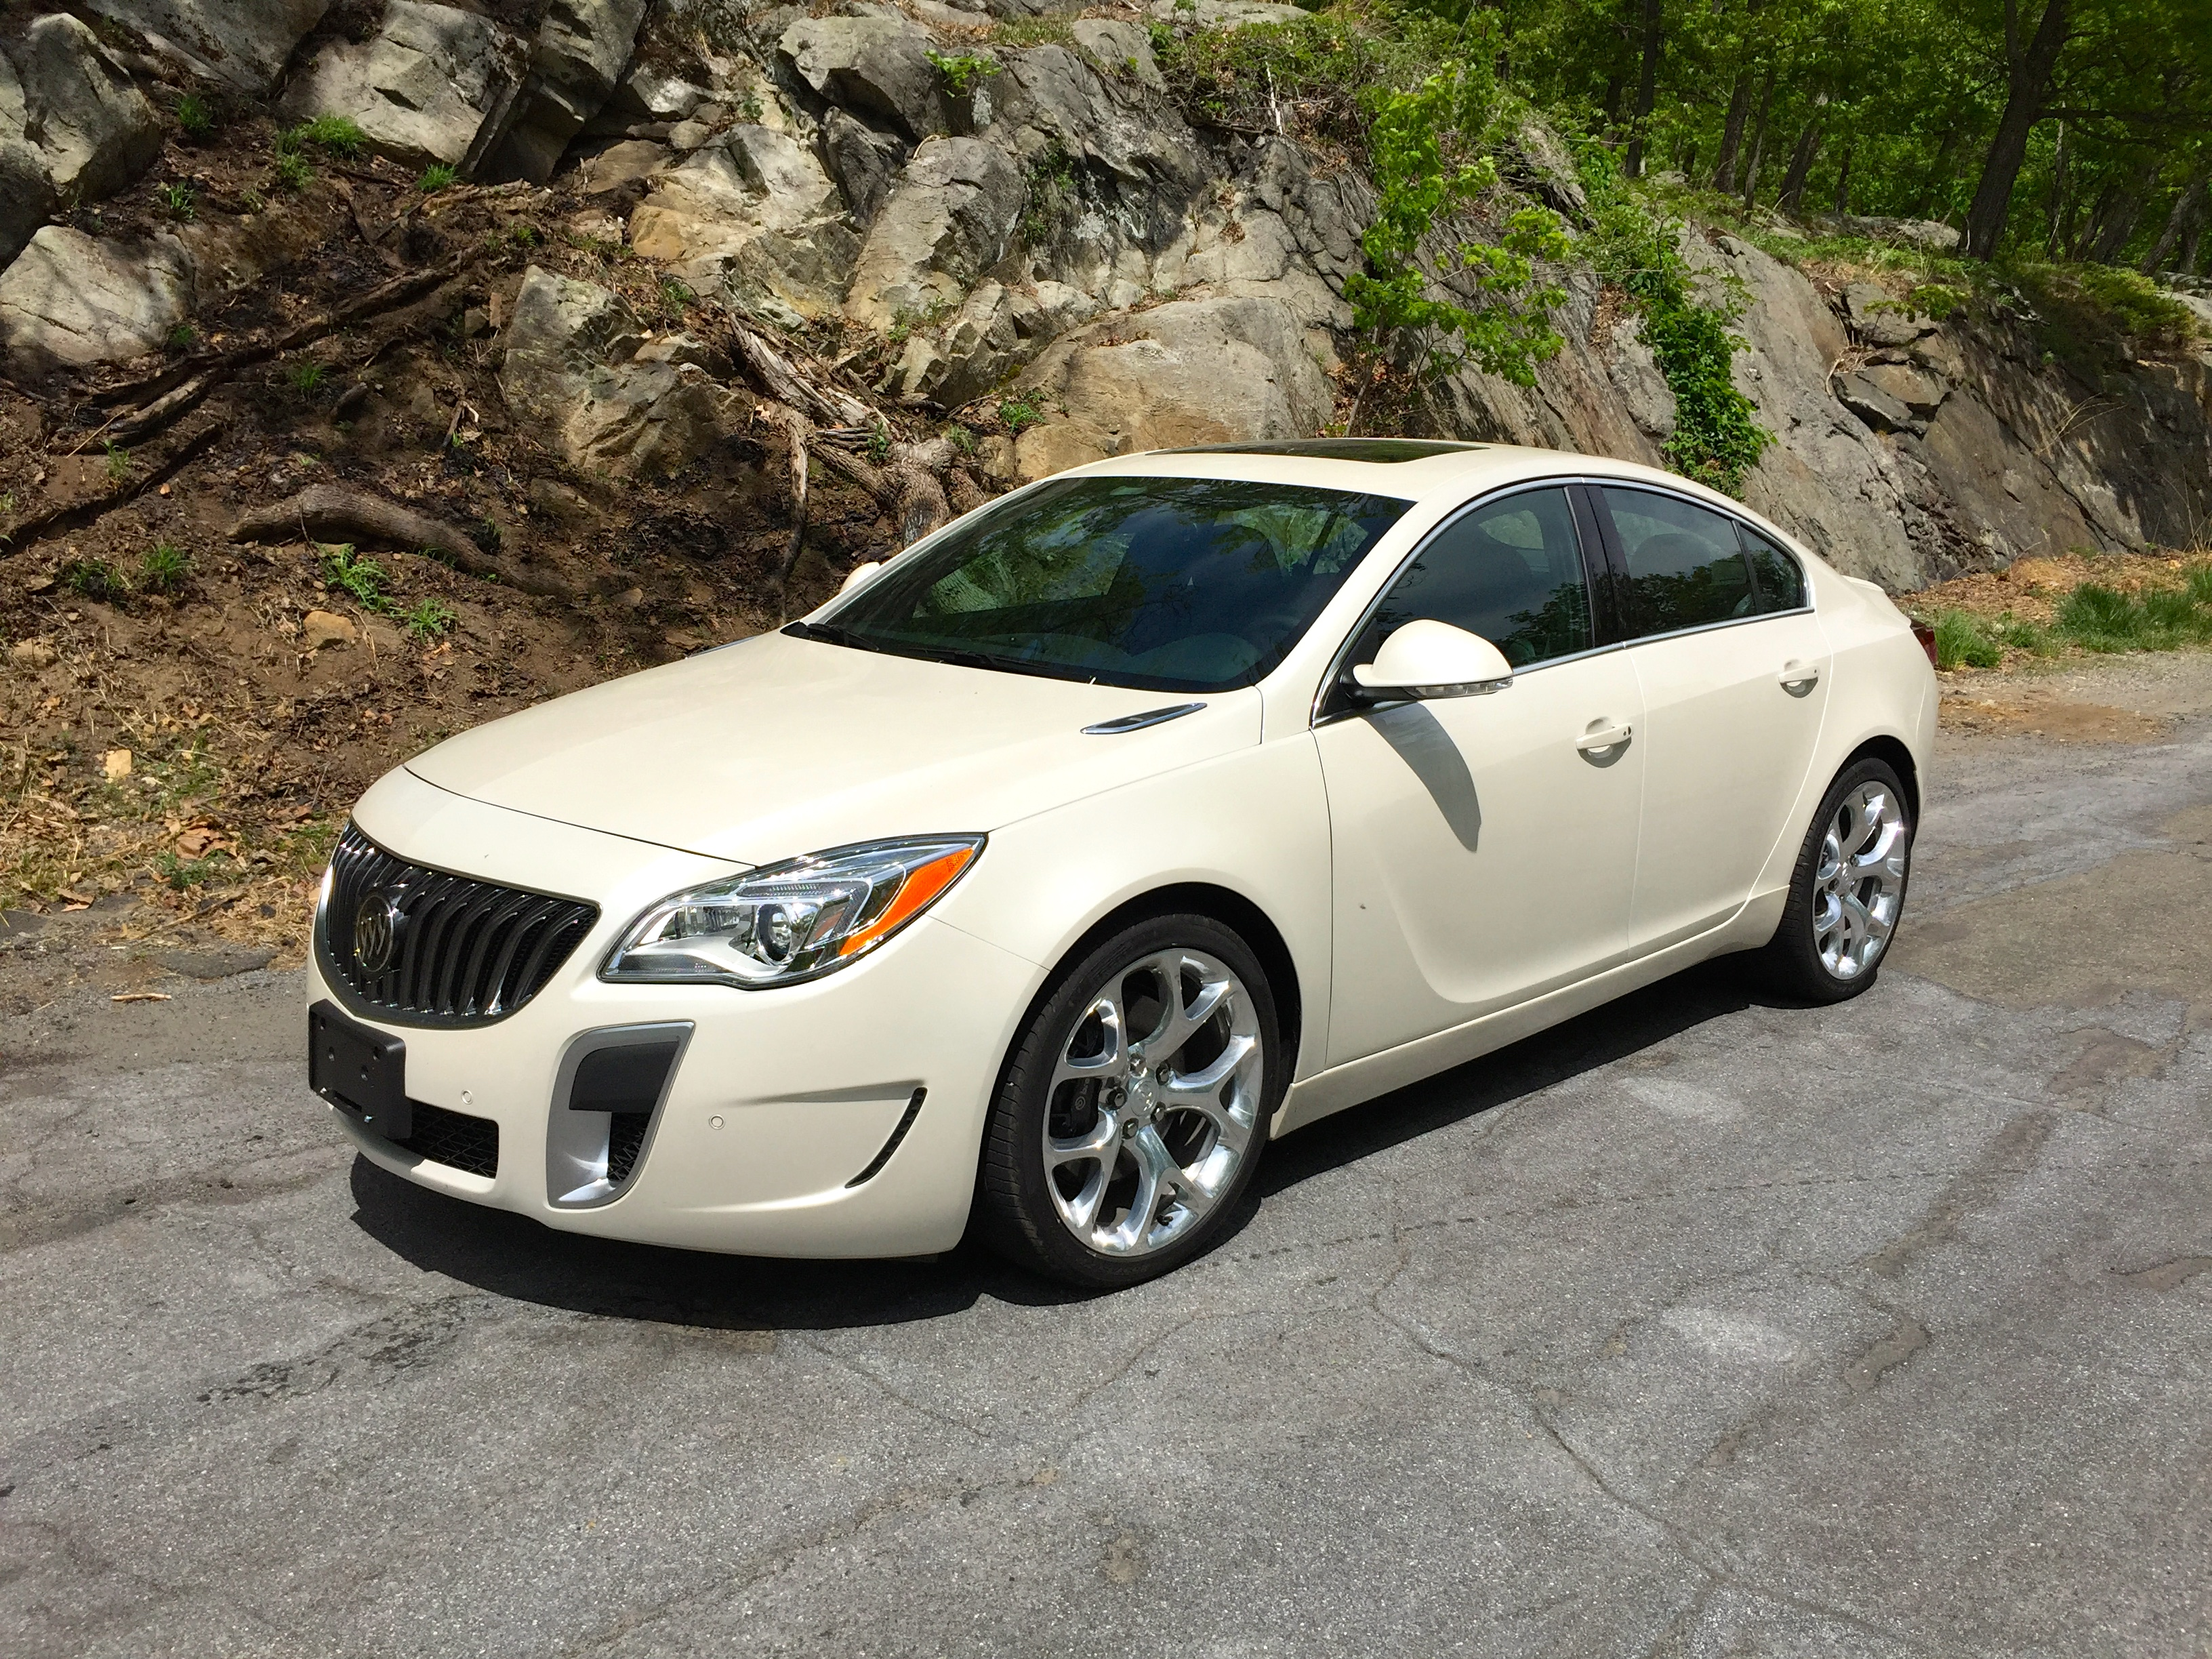 2015 buick regal gs review and test drive frequent business traveler. Black Bedroom Furniture Sets. Home Design Ideas